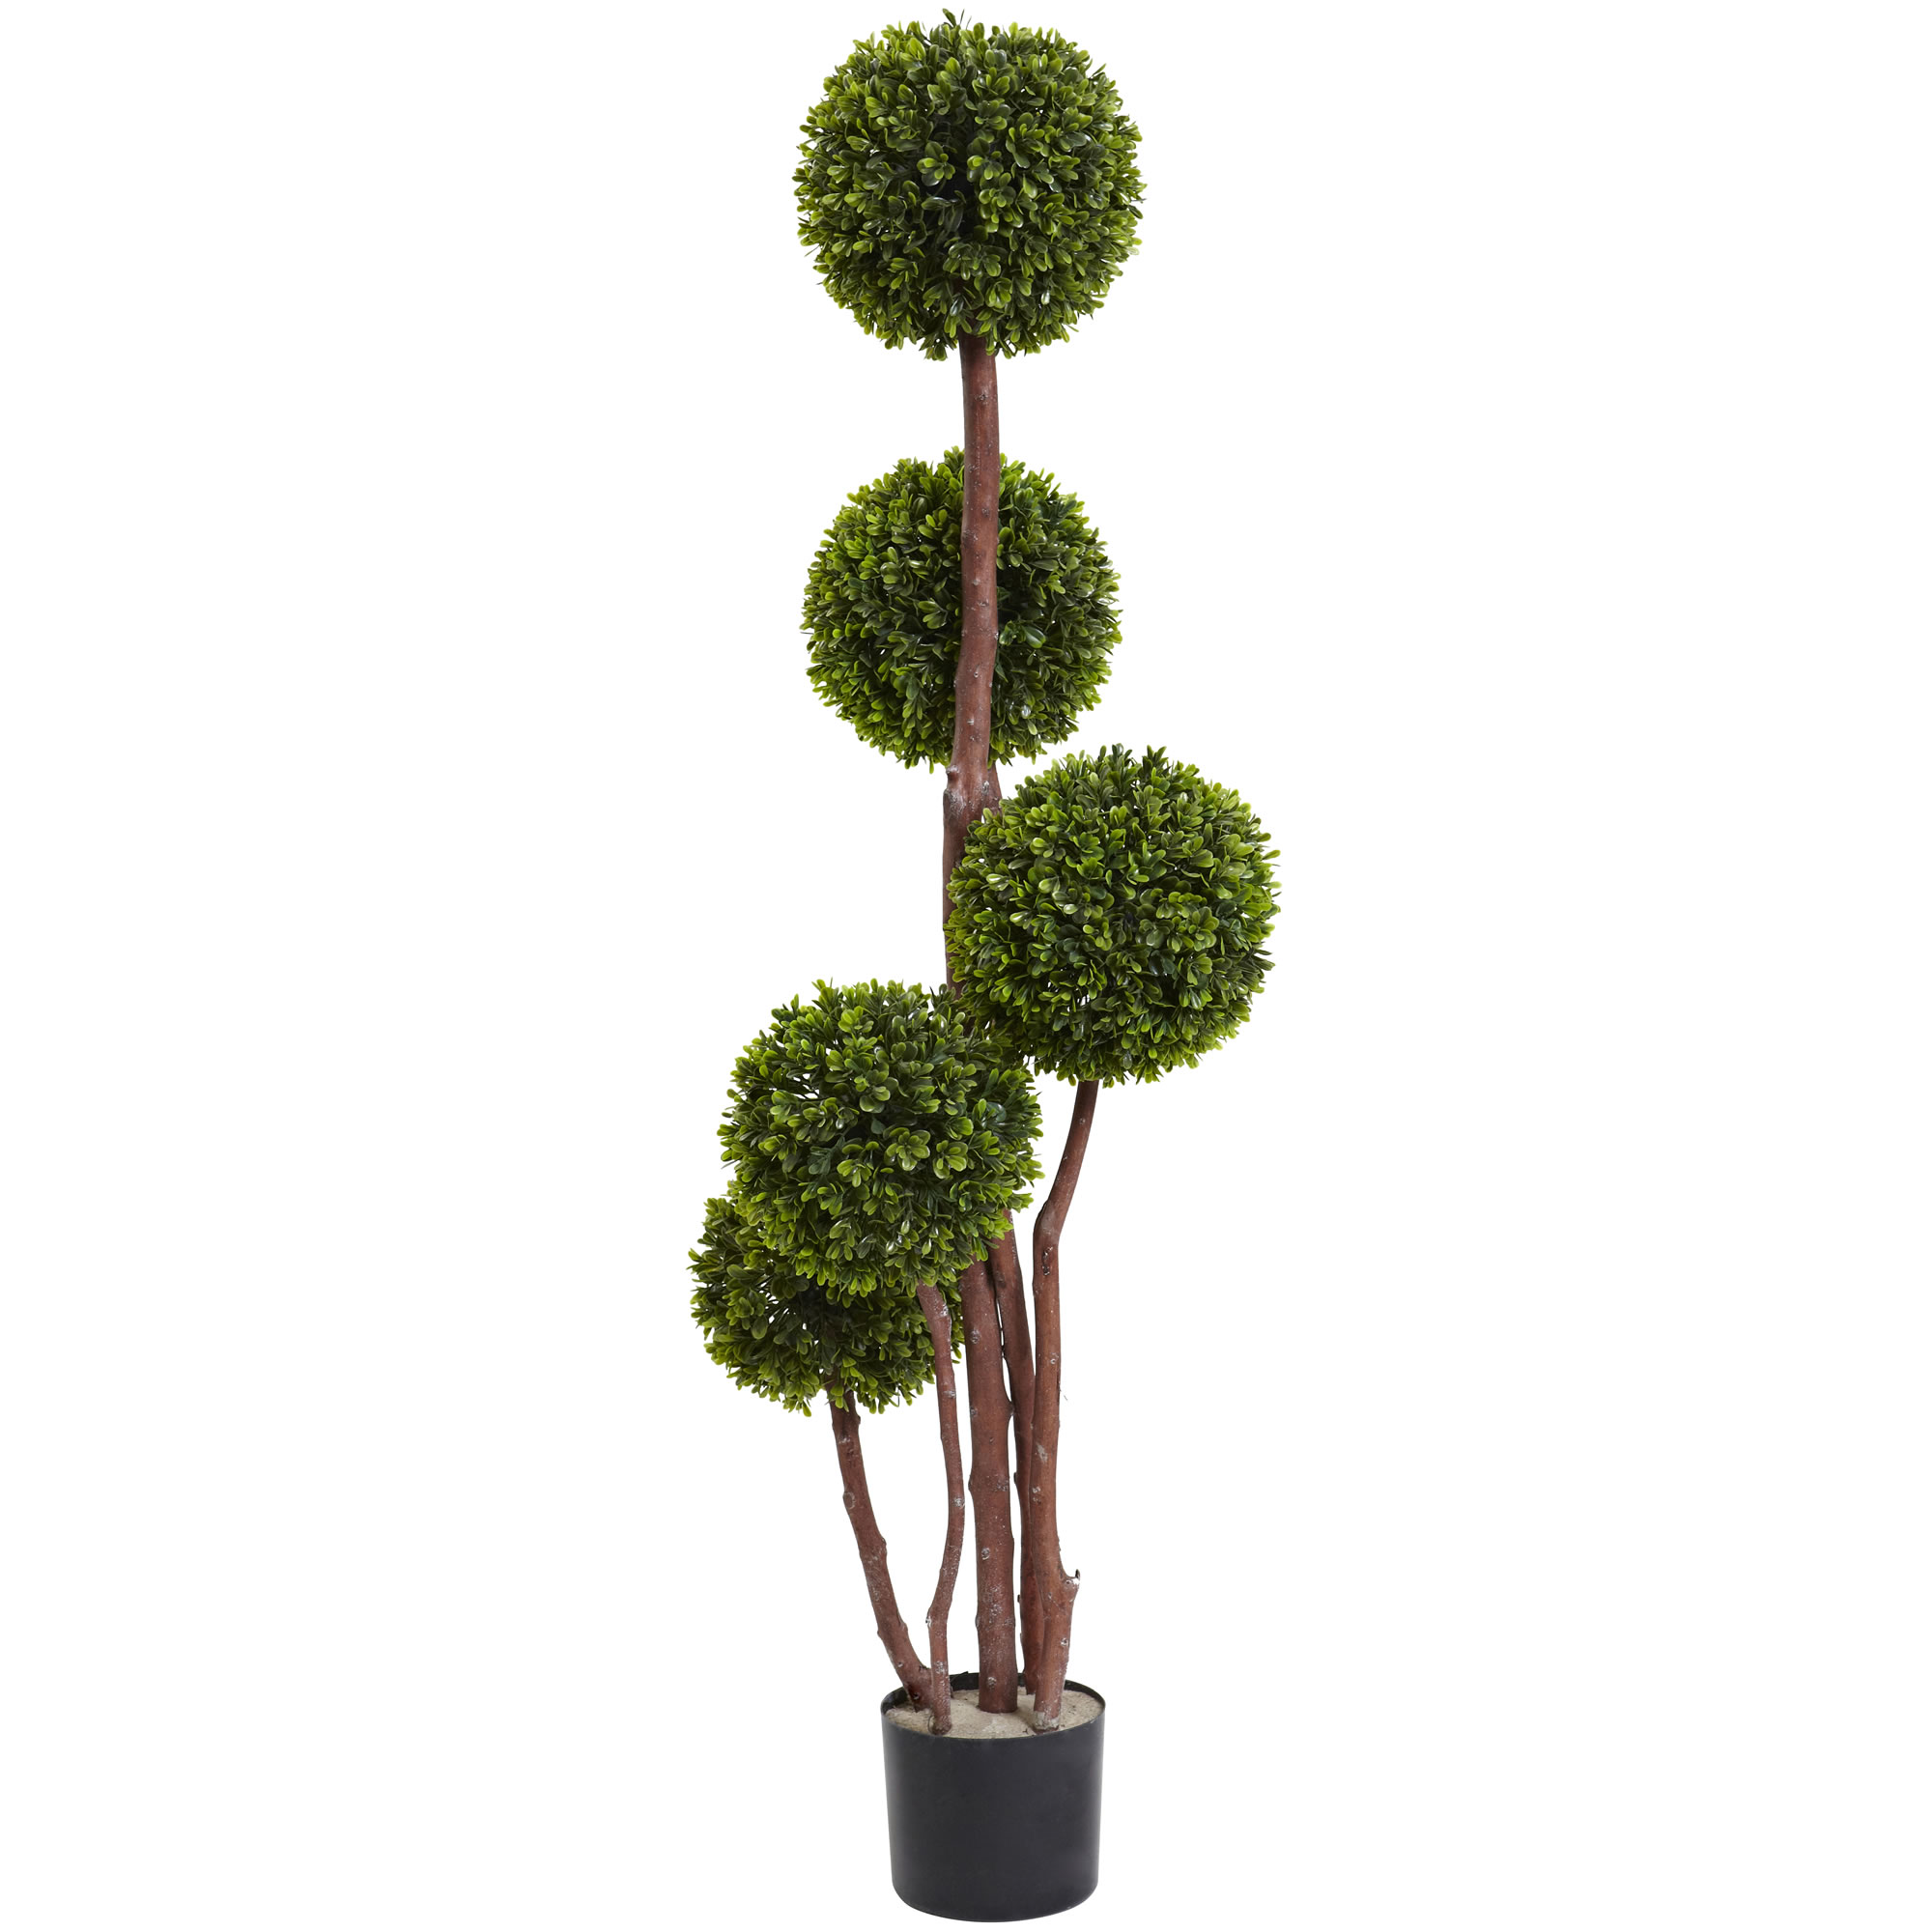 Image of SIERRA ACCESSORIES 4' Boxwood Topiary x5 w/420 Leaves UV Resistant (Indoor/Outdoor), Green